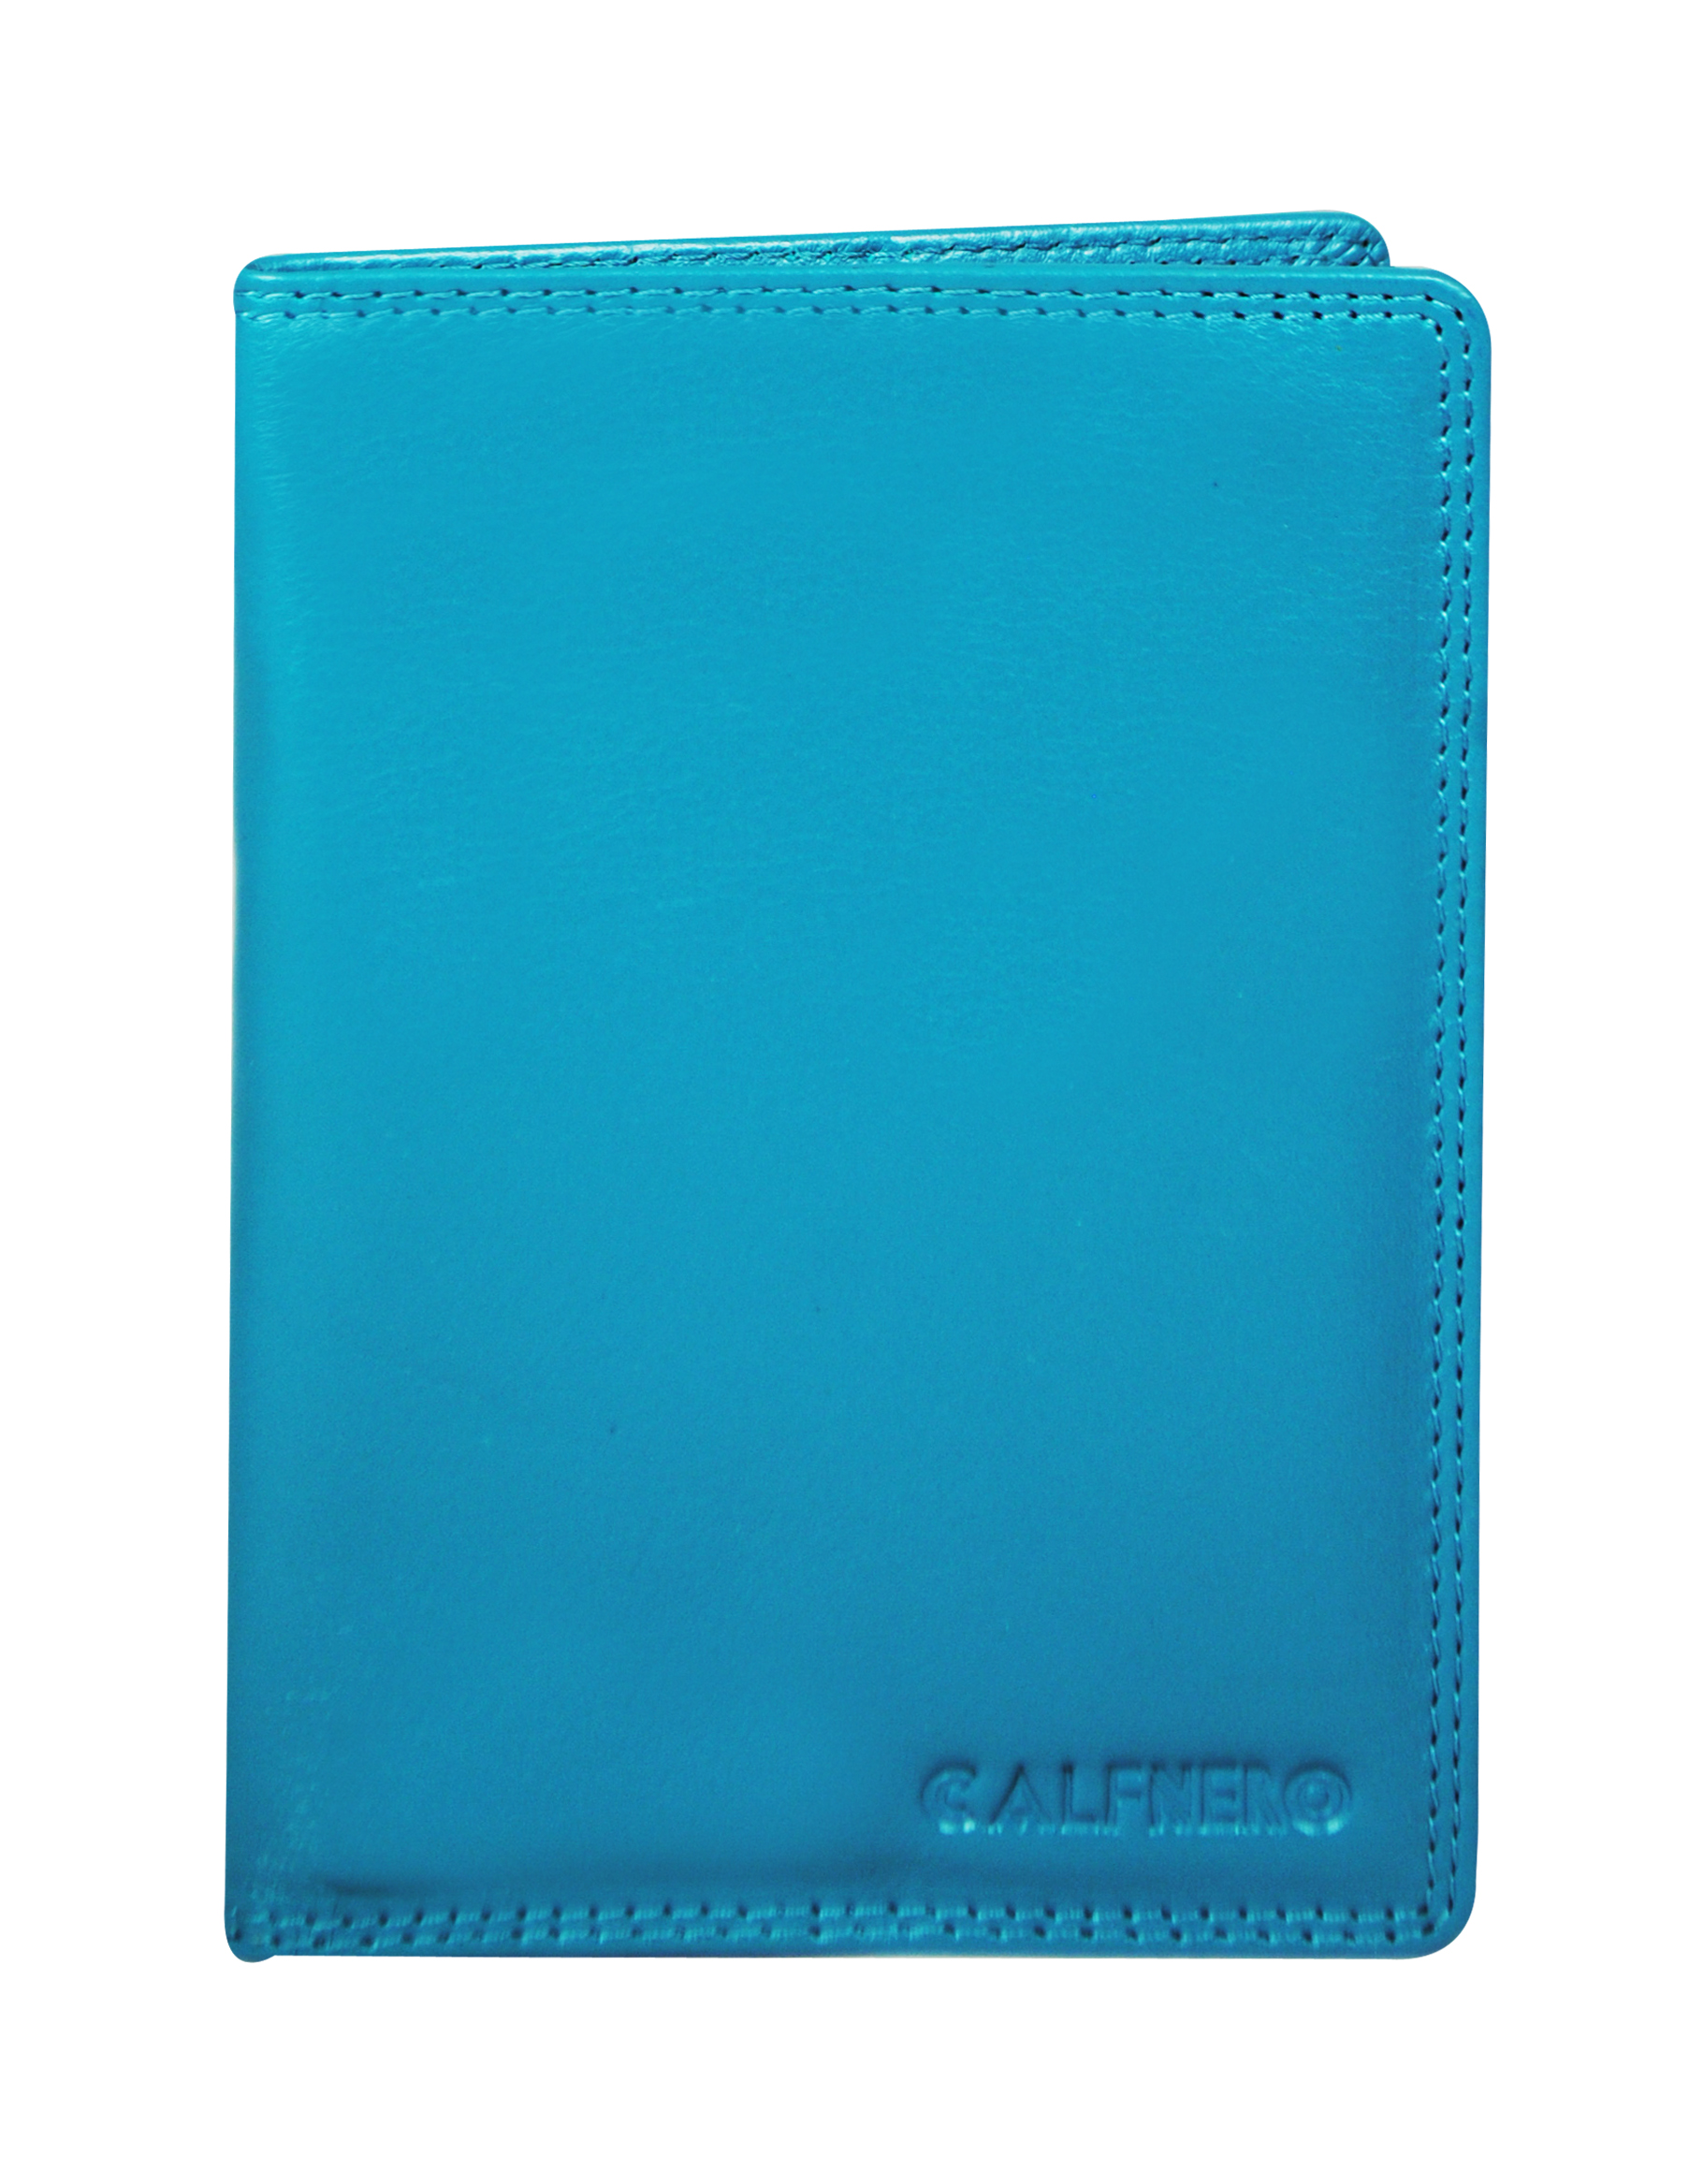 Calfnero Genuine Leather Passport Wallet